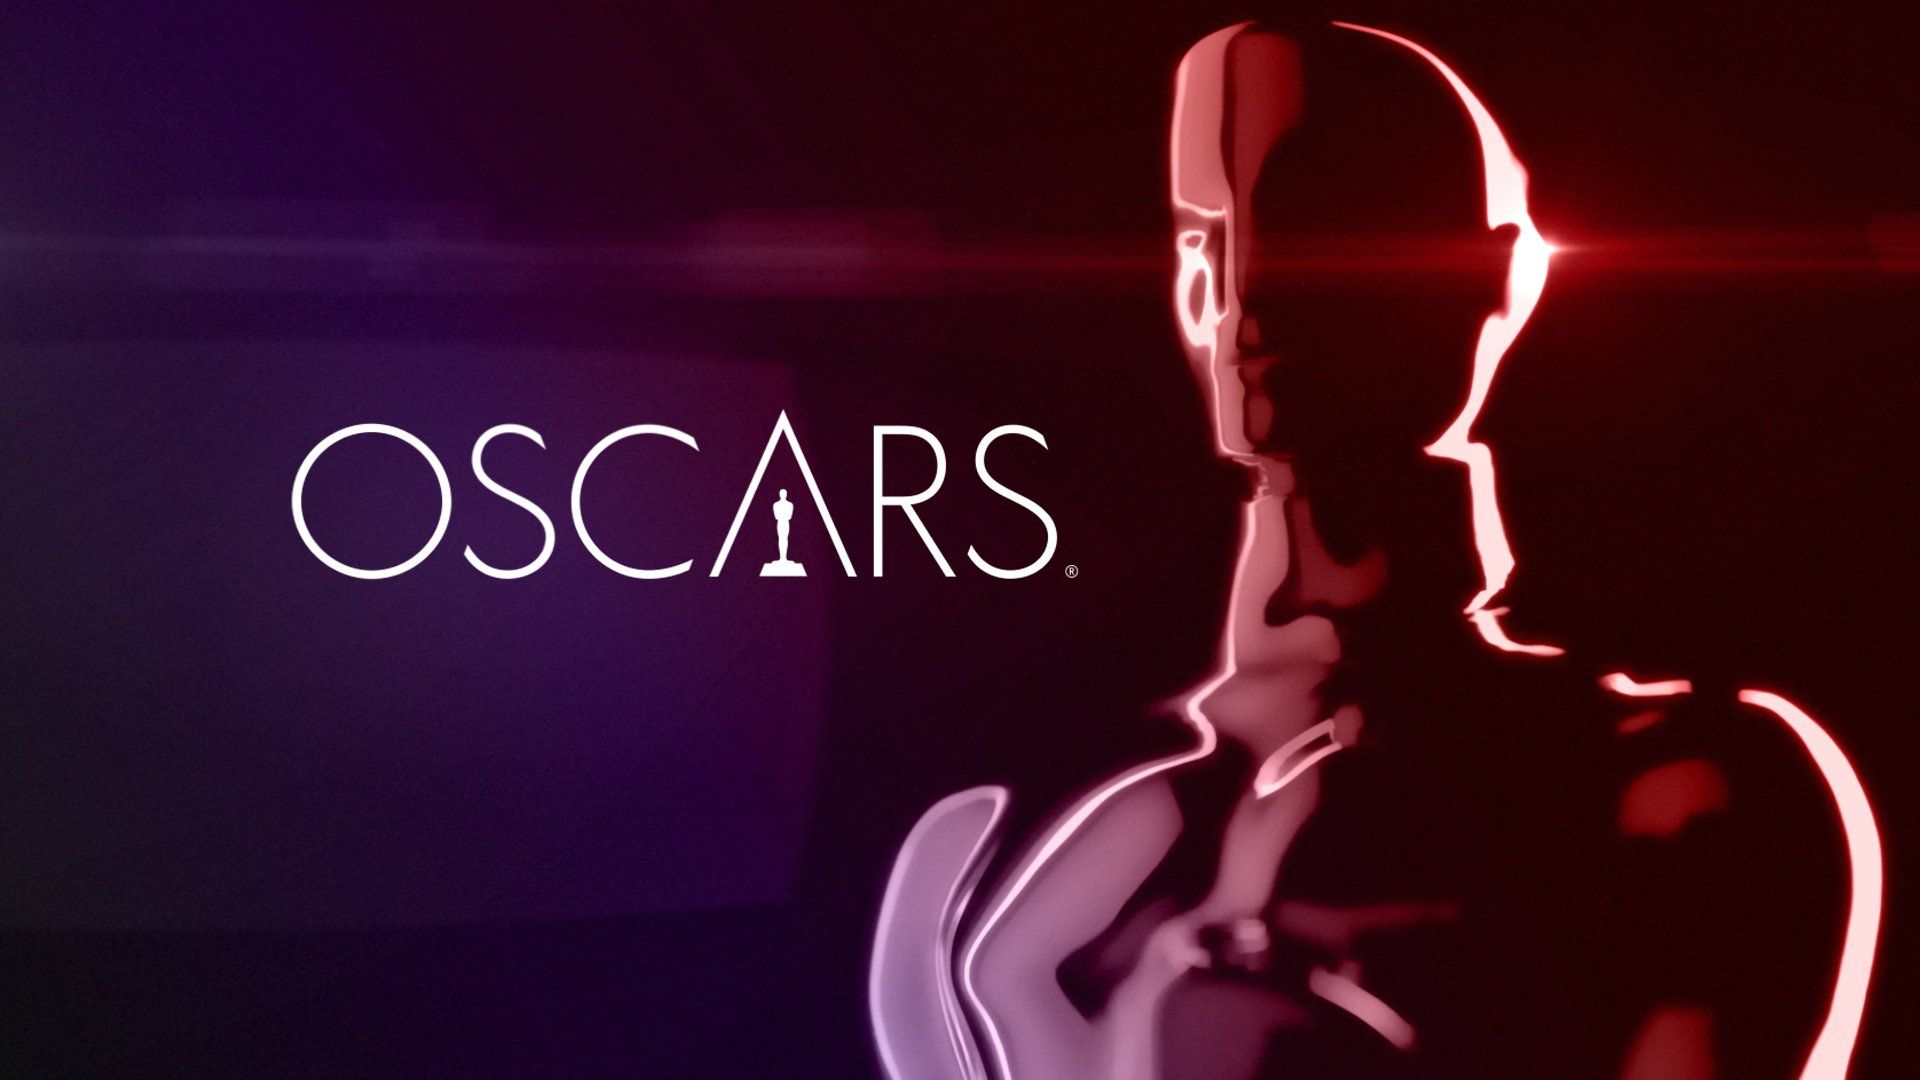 Watch The Oscars 2019 Live Stream Online in 2019 | AD